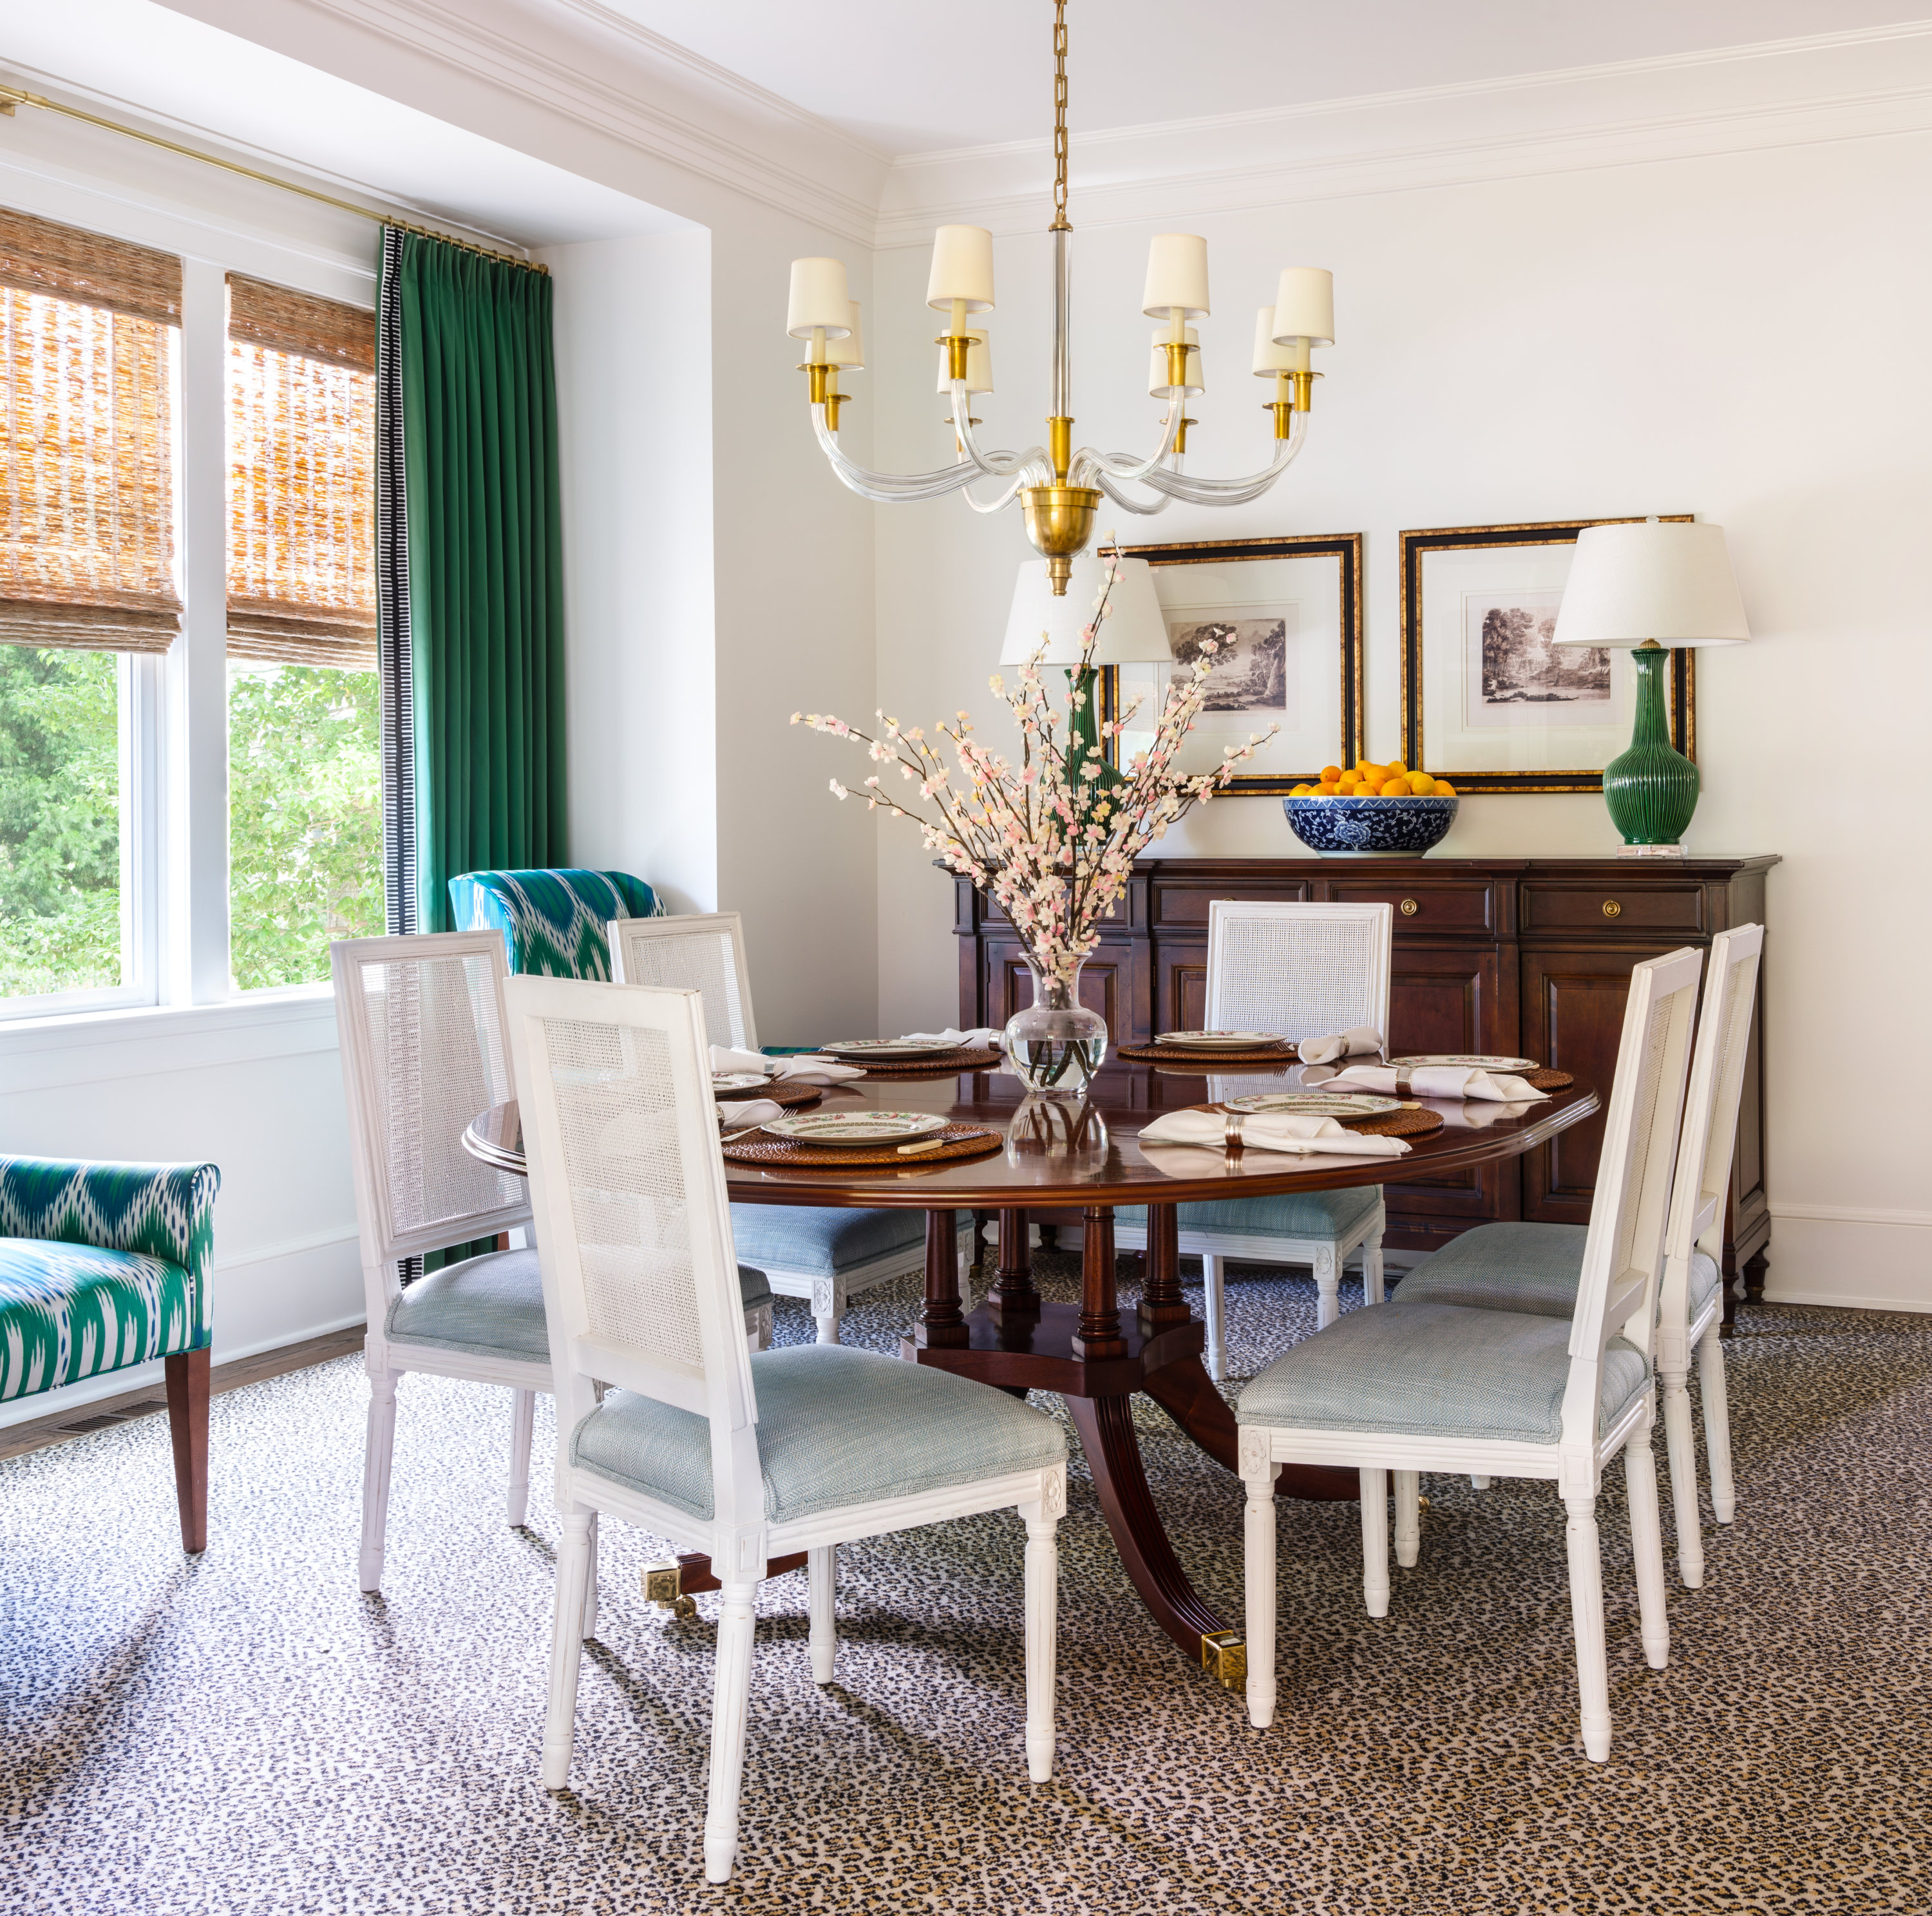 E Of The Week A Dining Room That Shows How To Mix Patterns